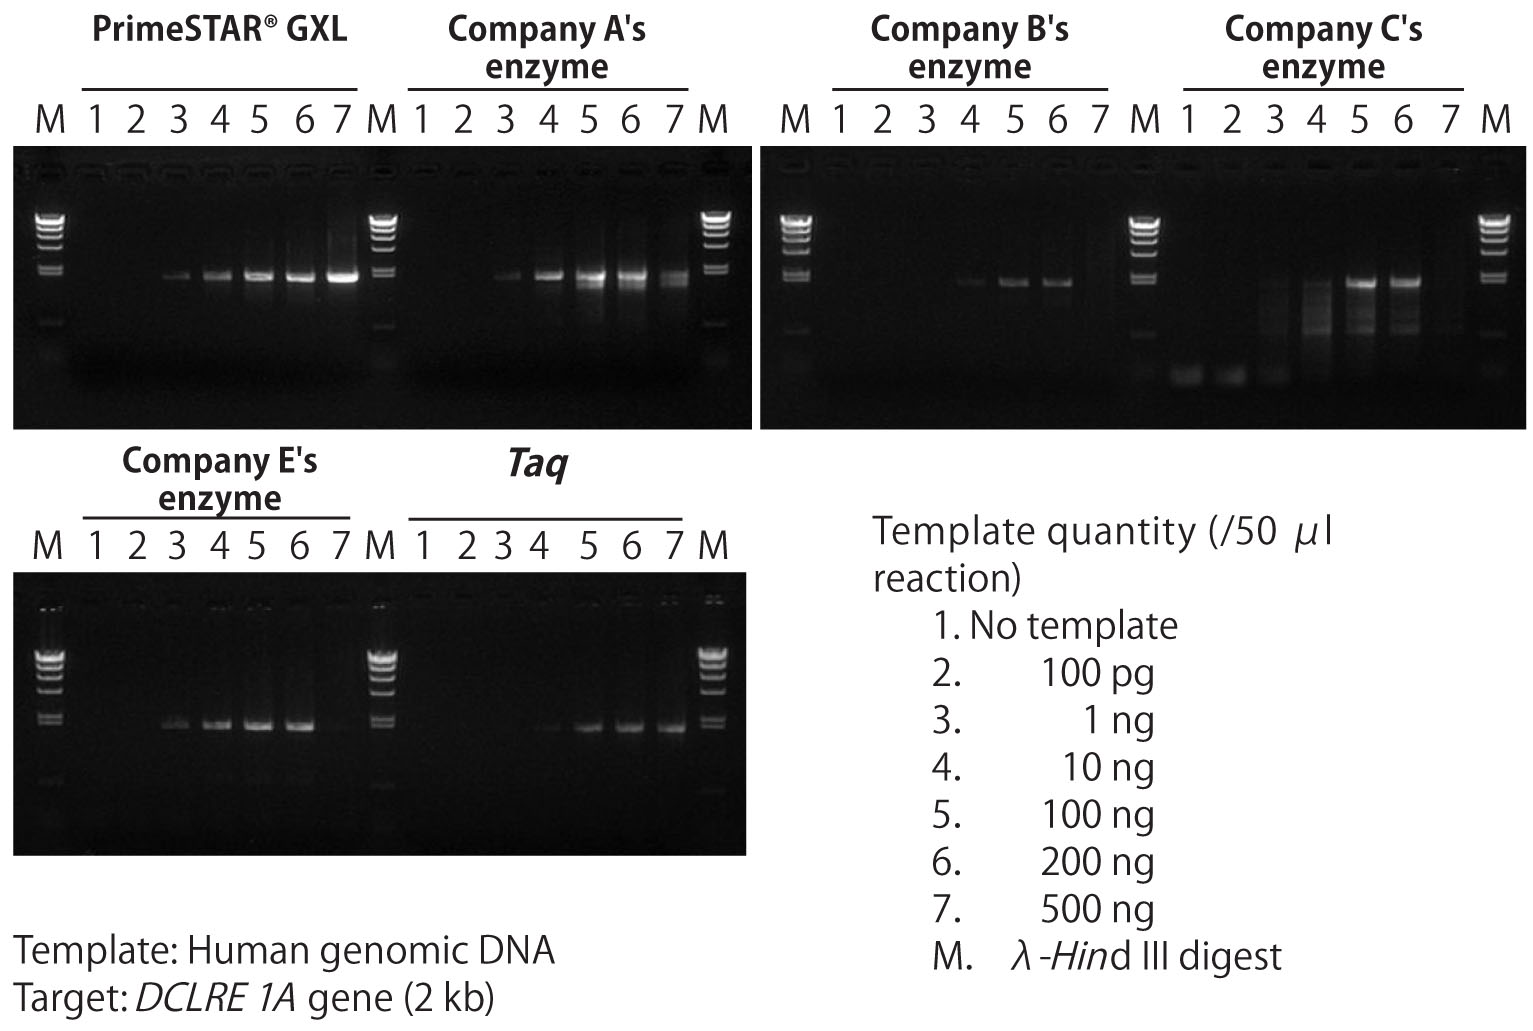 PrimeSTAR GXL DNA Polymerase shows efficient amplification in reaction mixes with a wide range of template quantity, including high levels of template that inhibit the activity of other commercially available high fidelity DNA polymerases